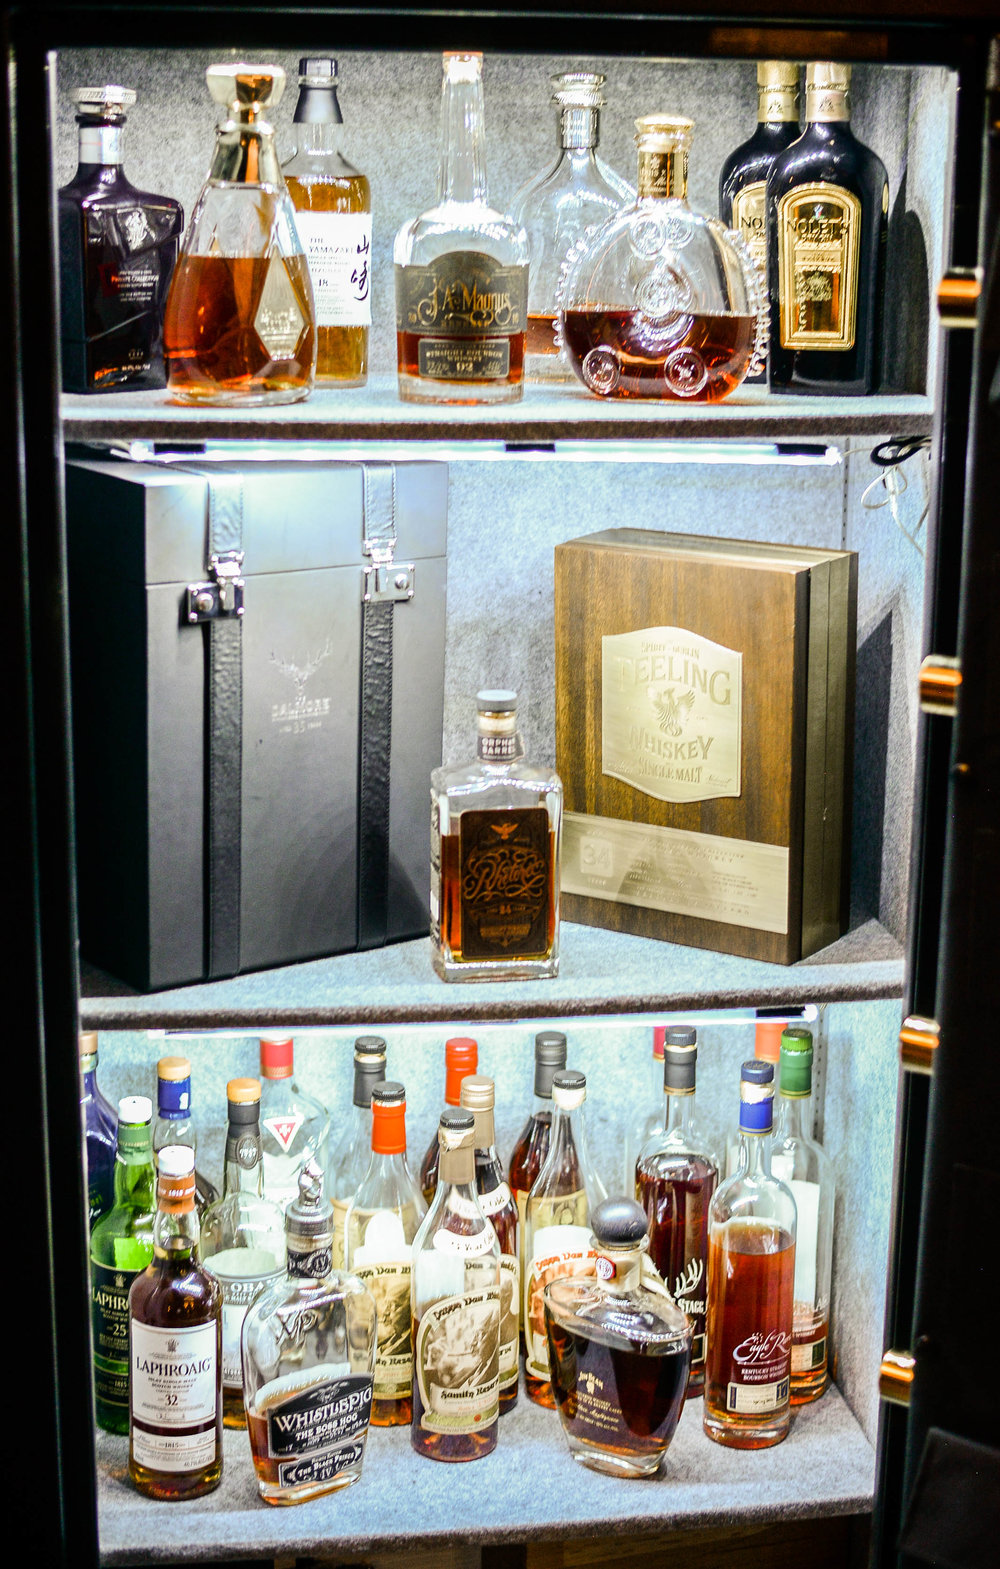 Reserves from the Vault at Quadrant, The Ritz Carlton Washington D.C.